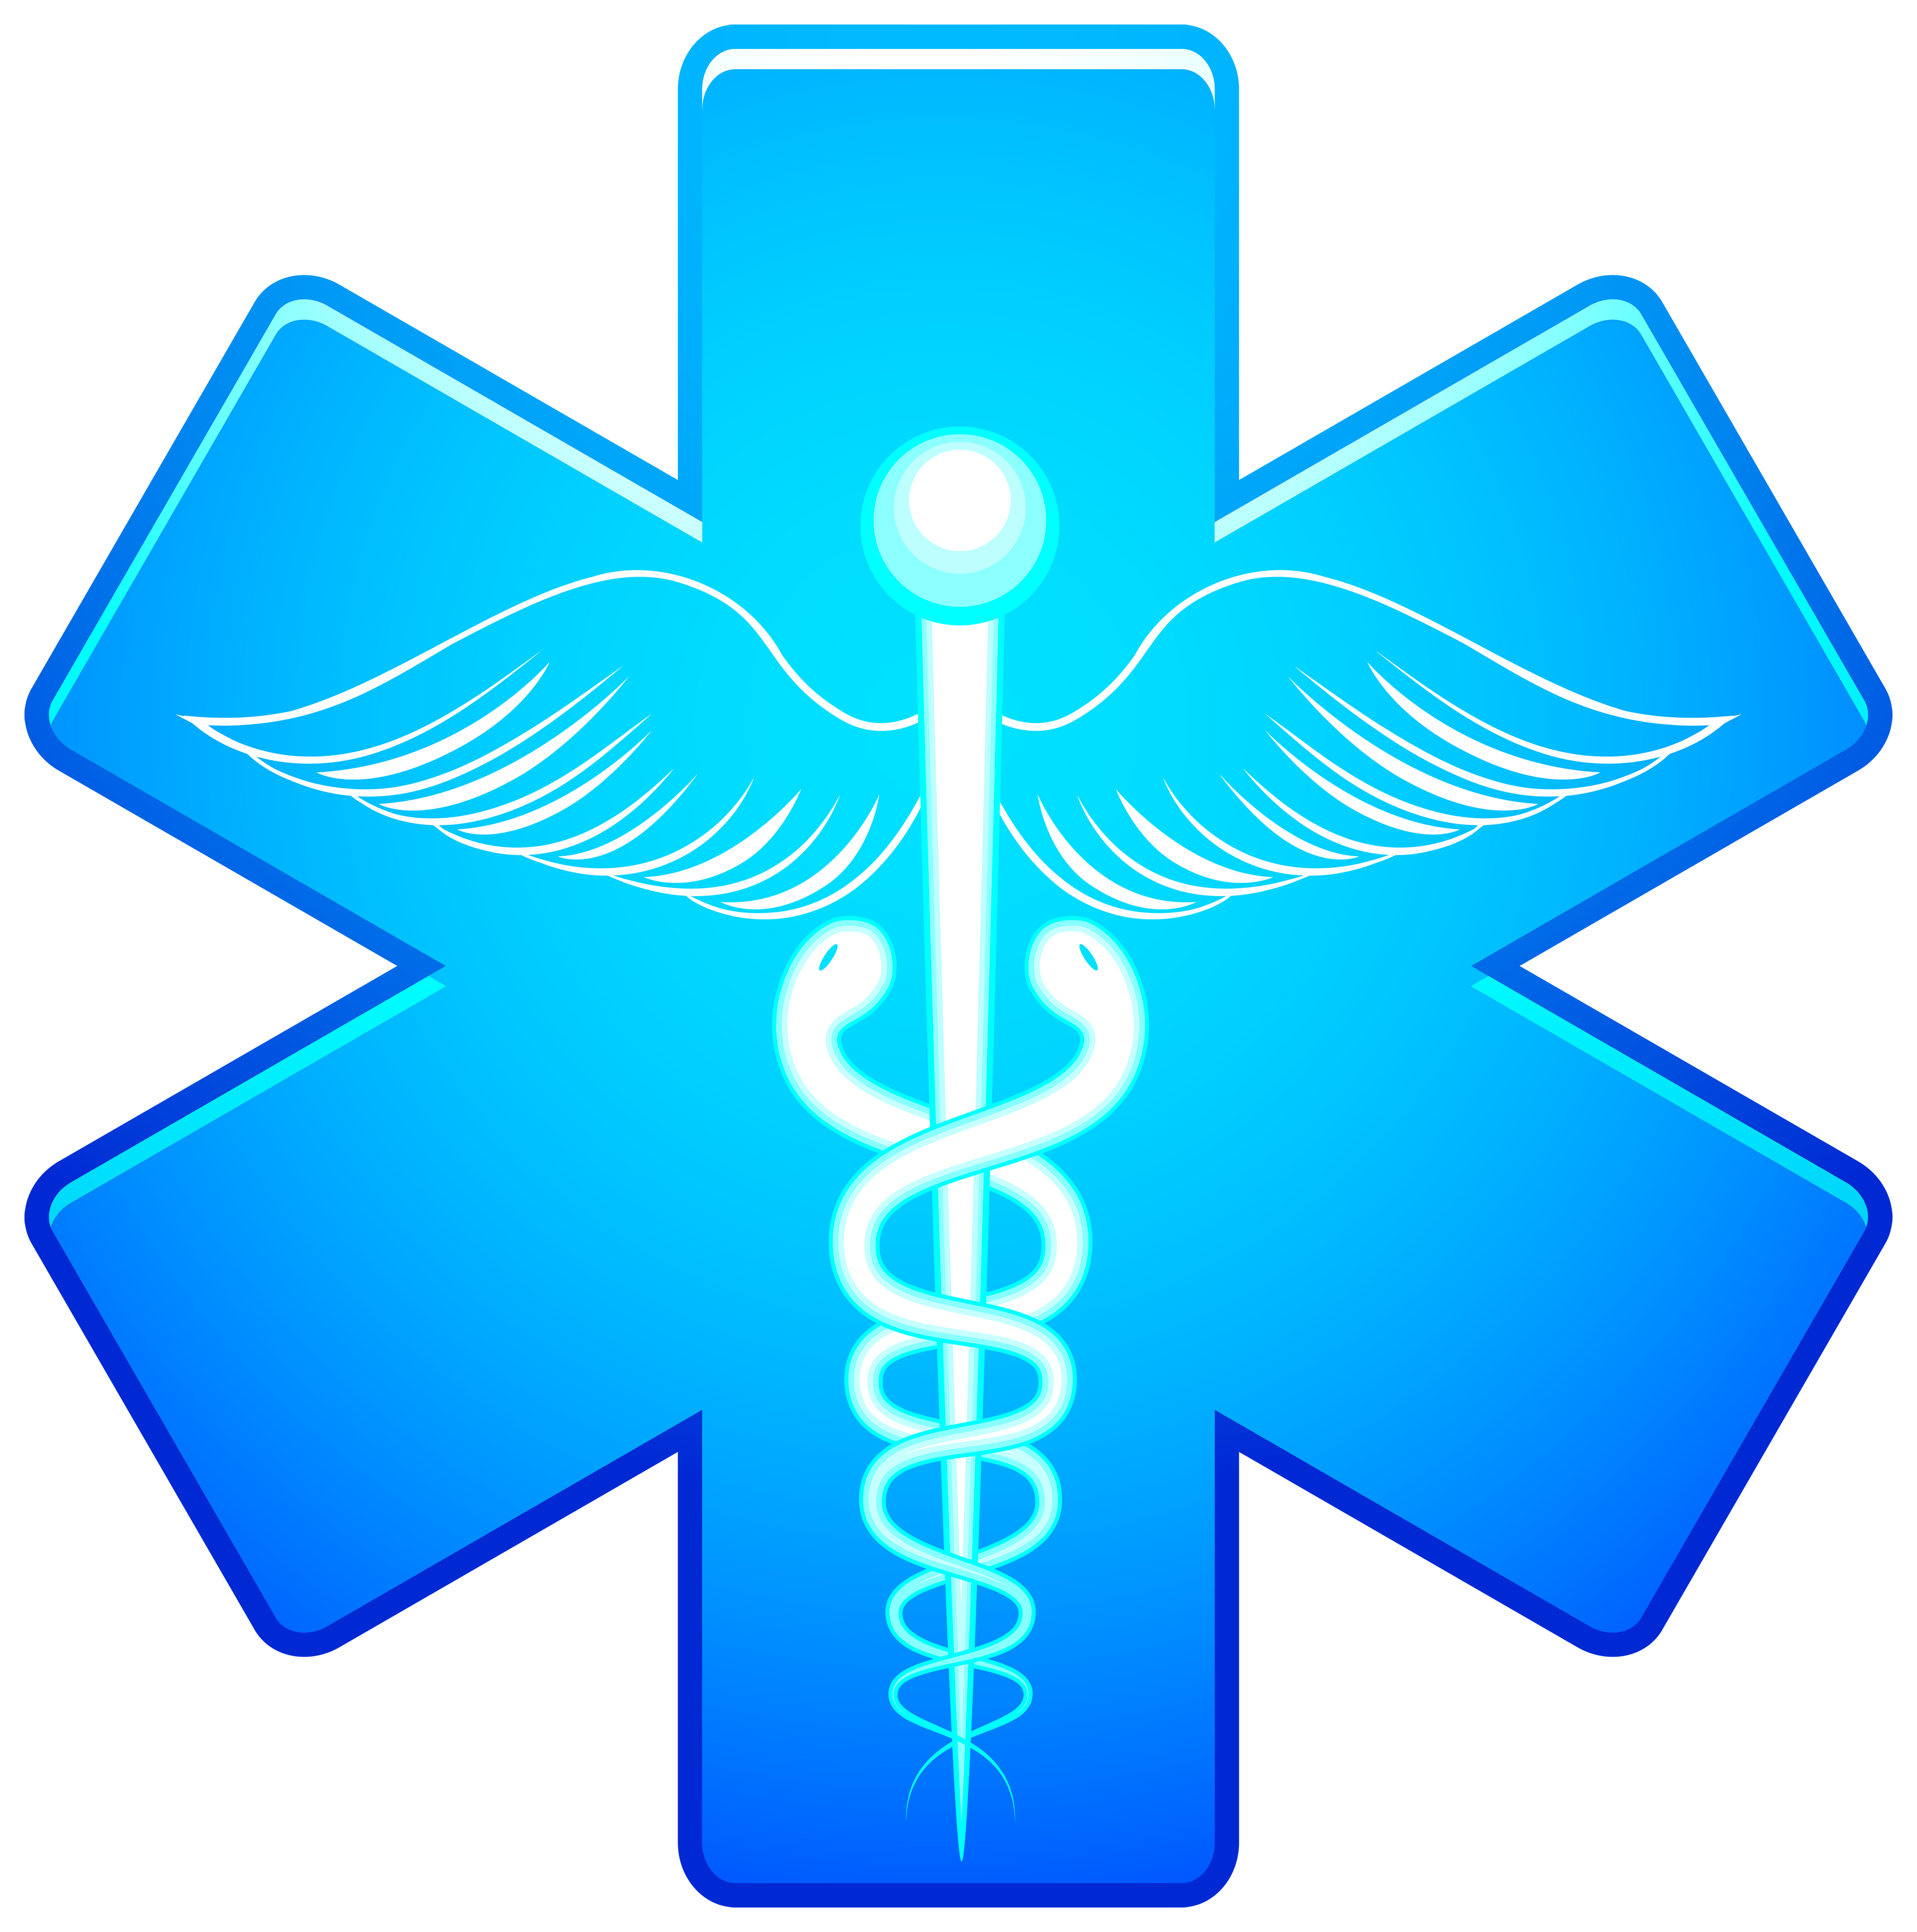 Symbol png best web. Computer clipart pharmacist